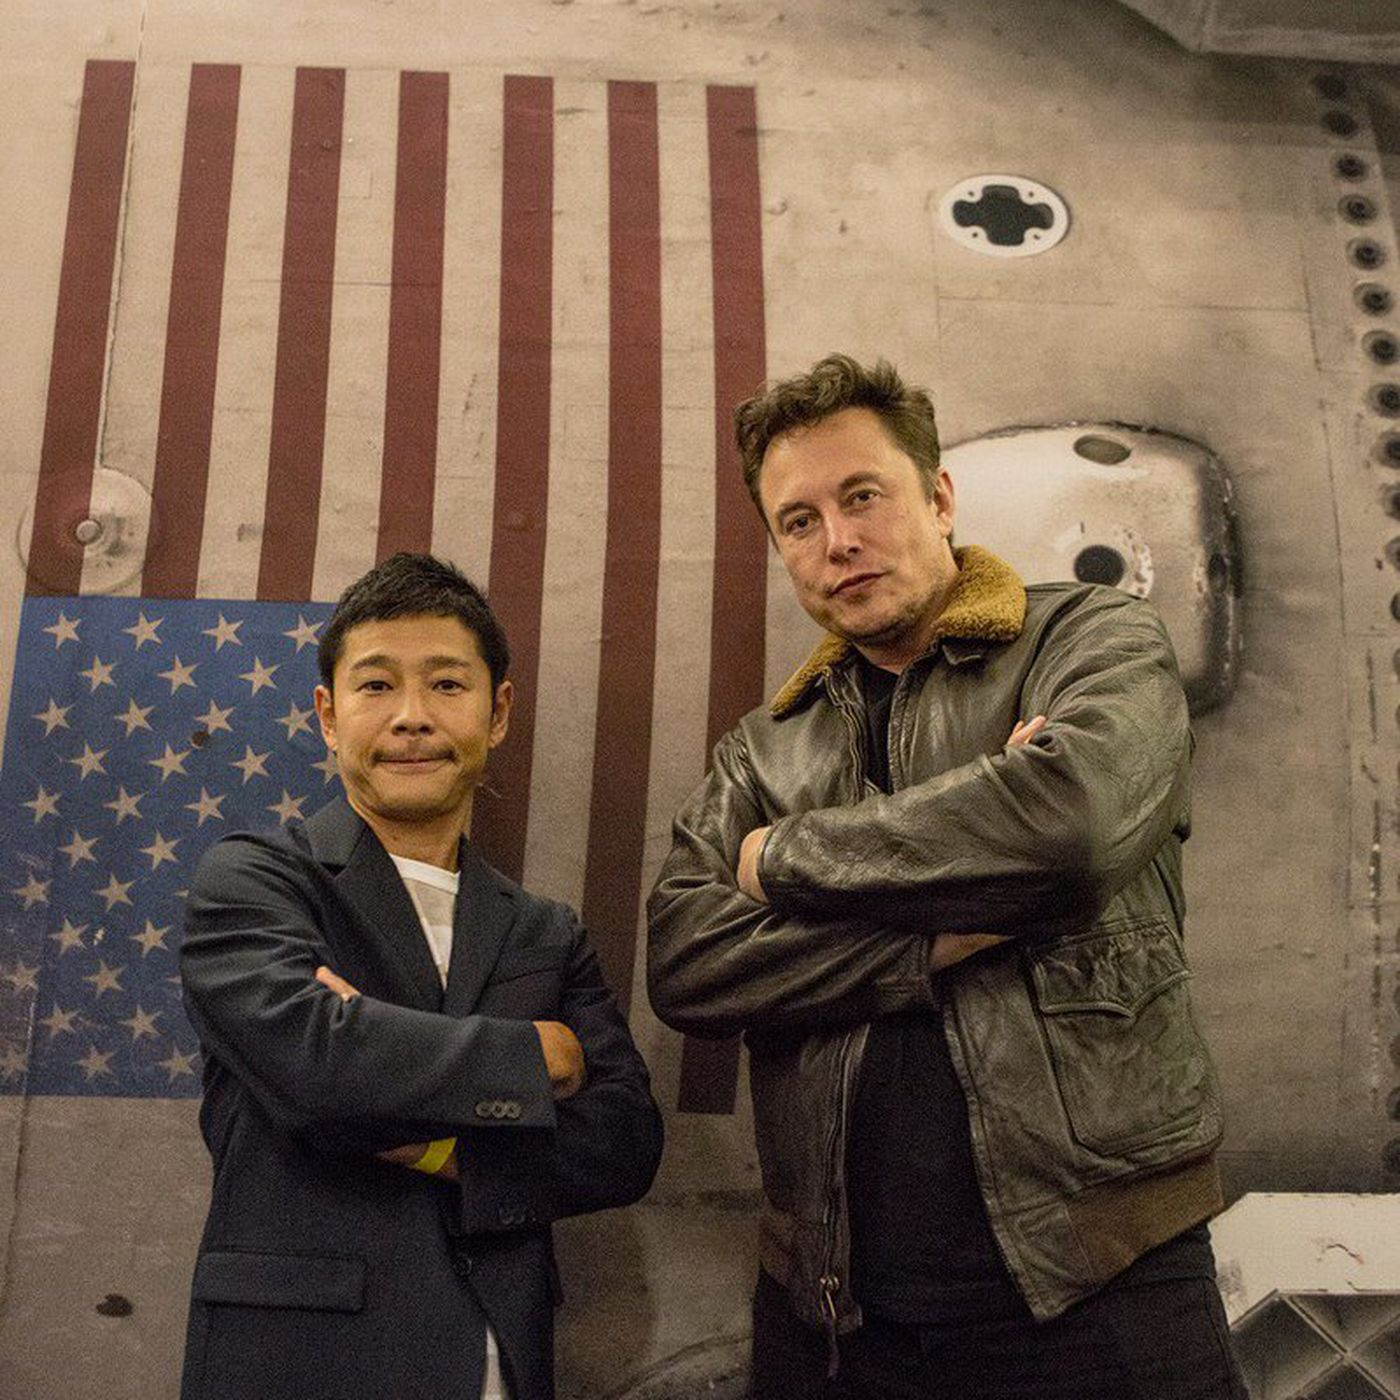 theverge.com - Loren Grush - The easiest way for Elon Musk to raise money for SpaceX might be tourism